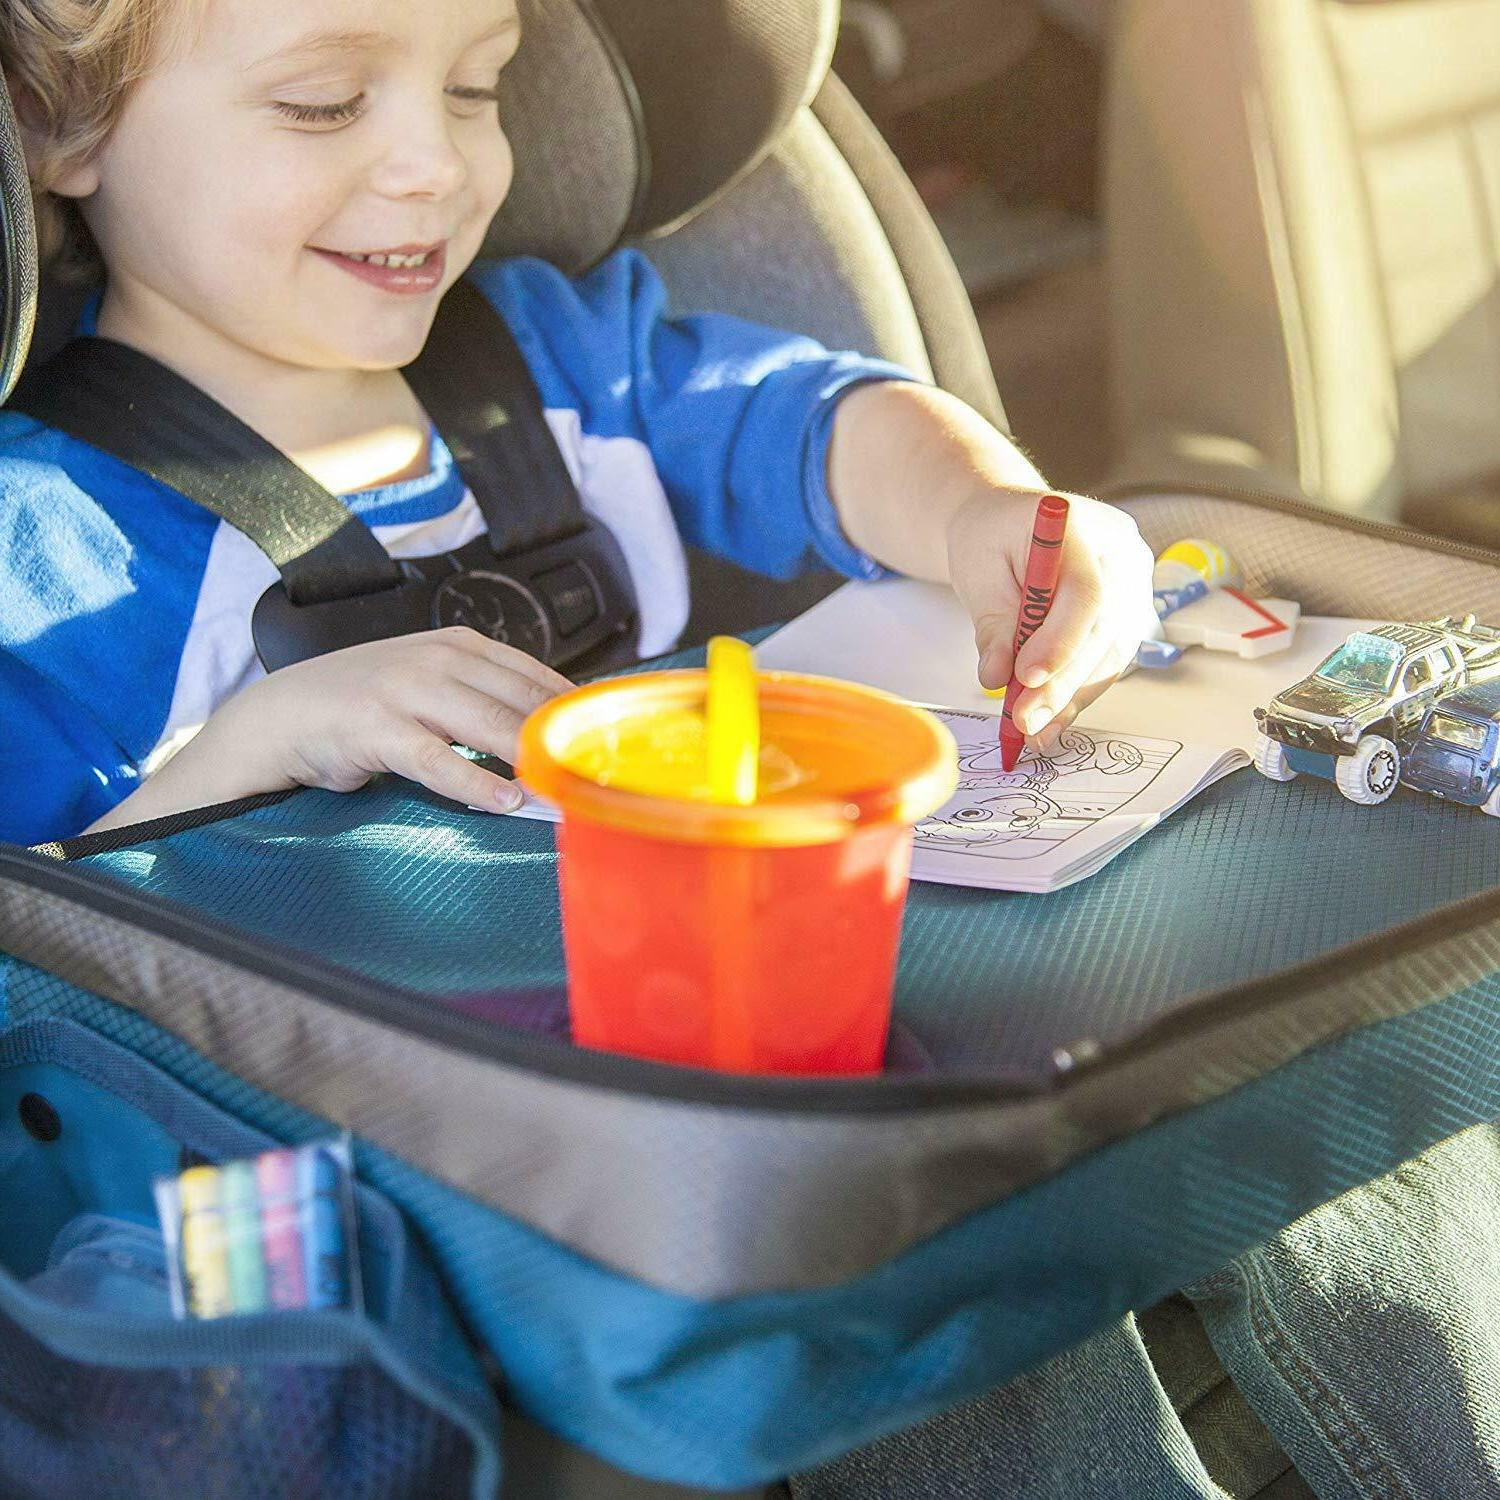 Kids for Car in 1 Lap Organizer, Tablet